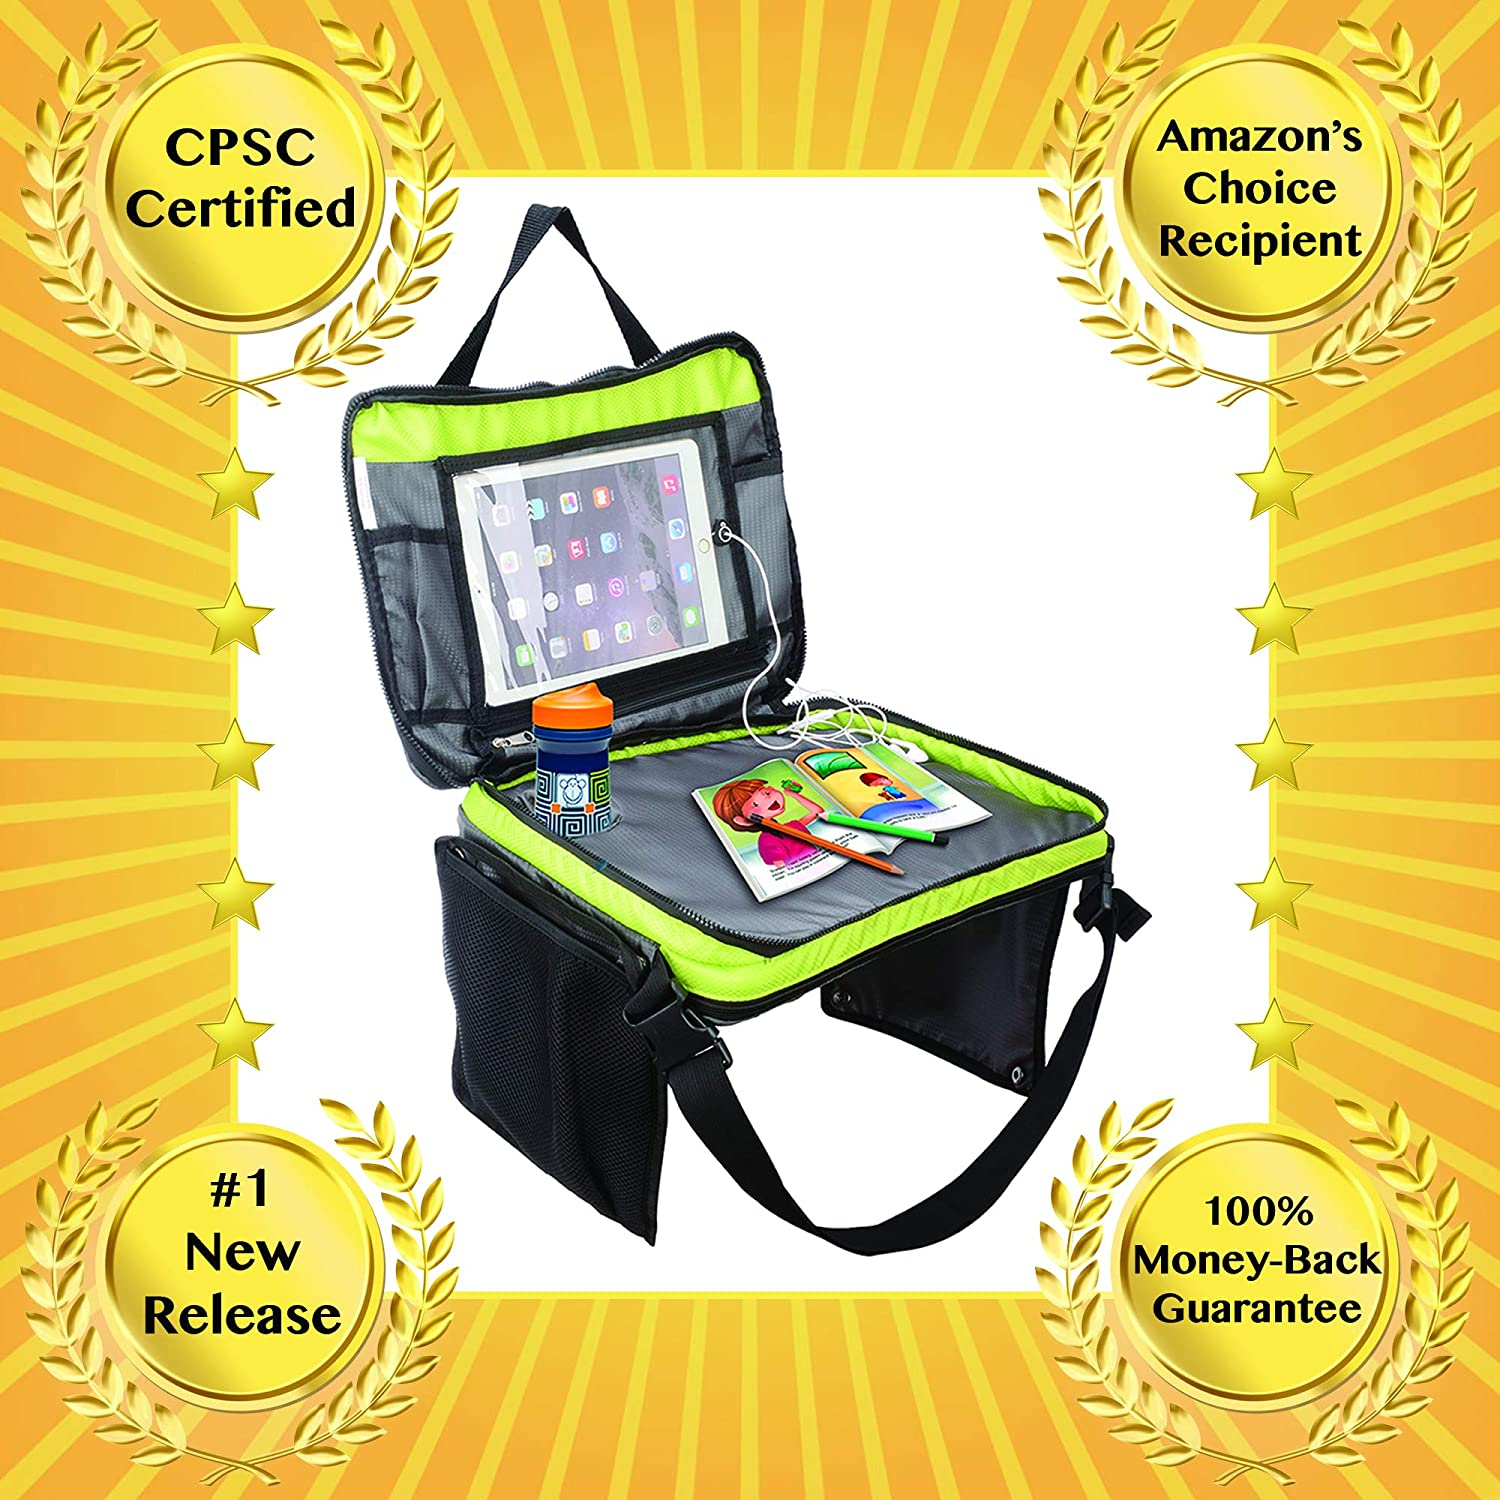 Zip Away Travel Tray Car Seat For Kids With Cup And Electronic Kits Tablet Holder